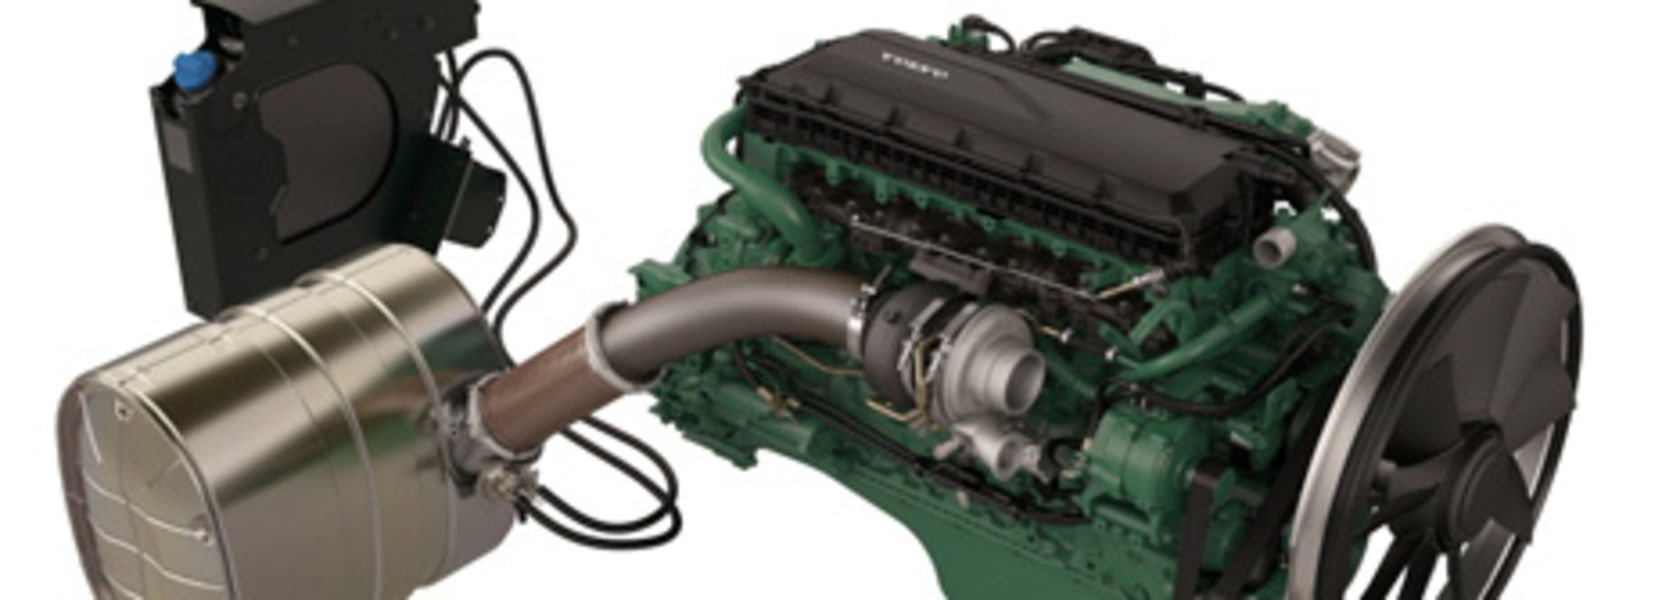 Volvo Penta engines approved for mining